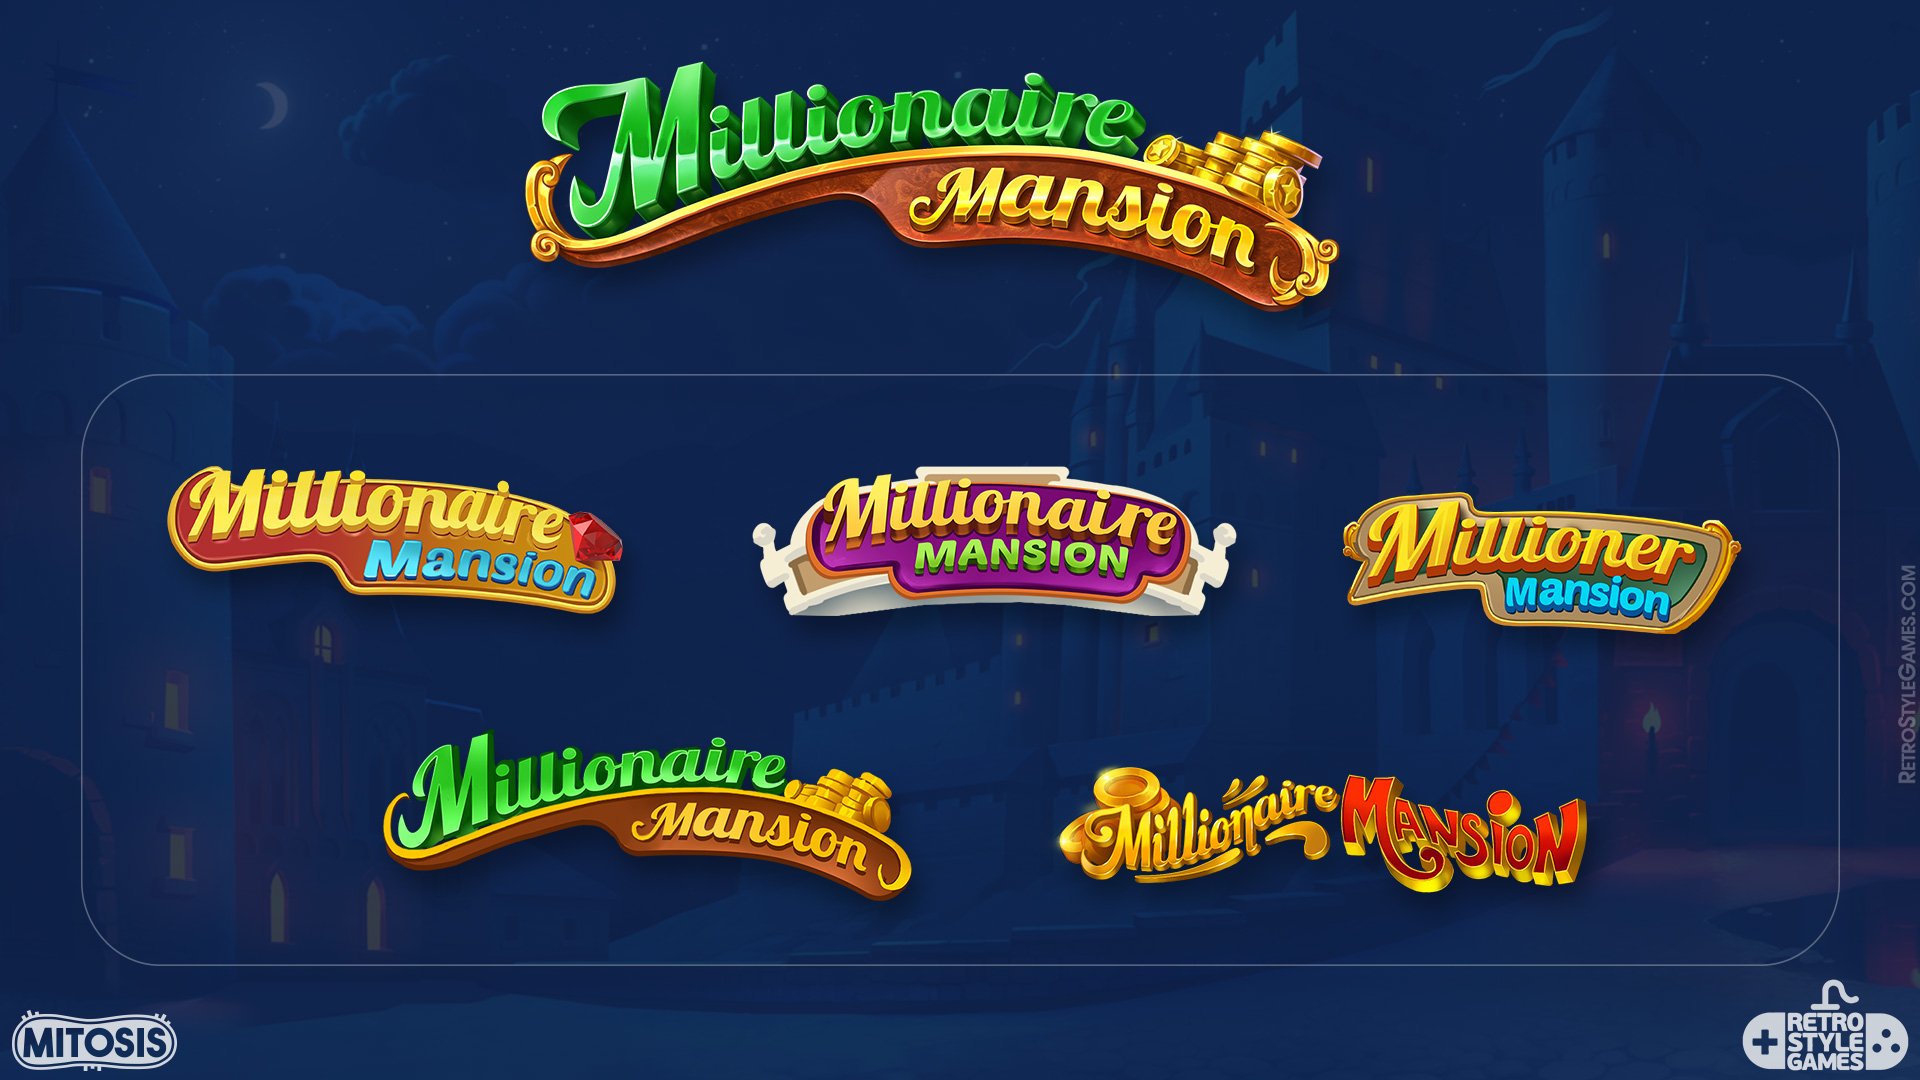 2D Illustration Game Logo Version Millionaire Mansion Concept